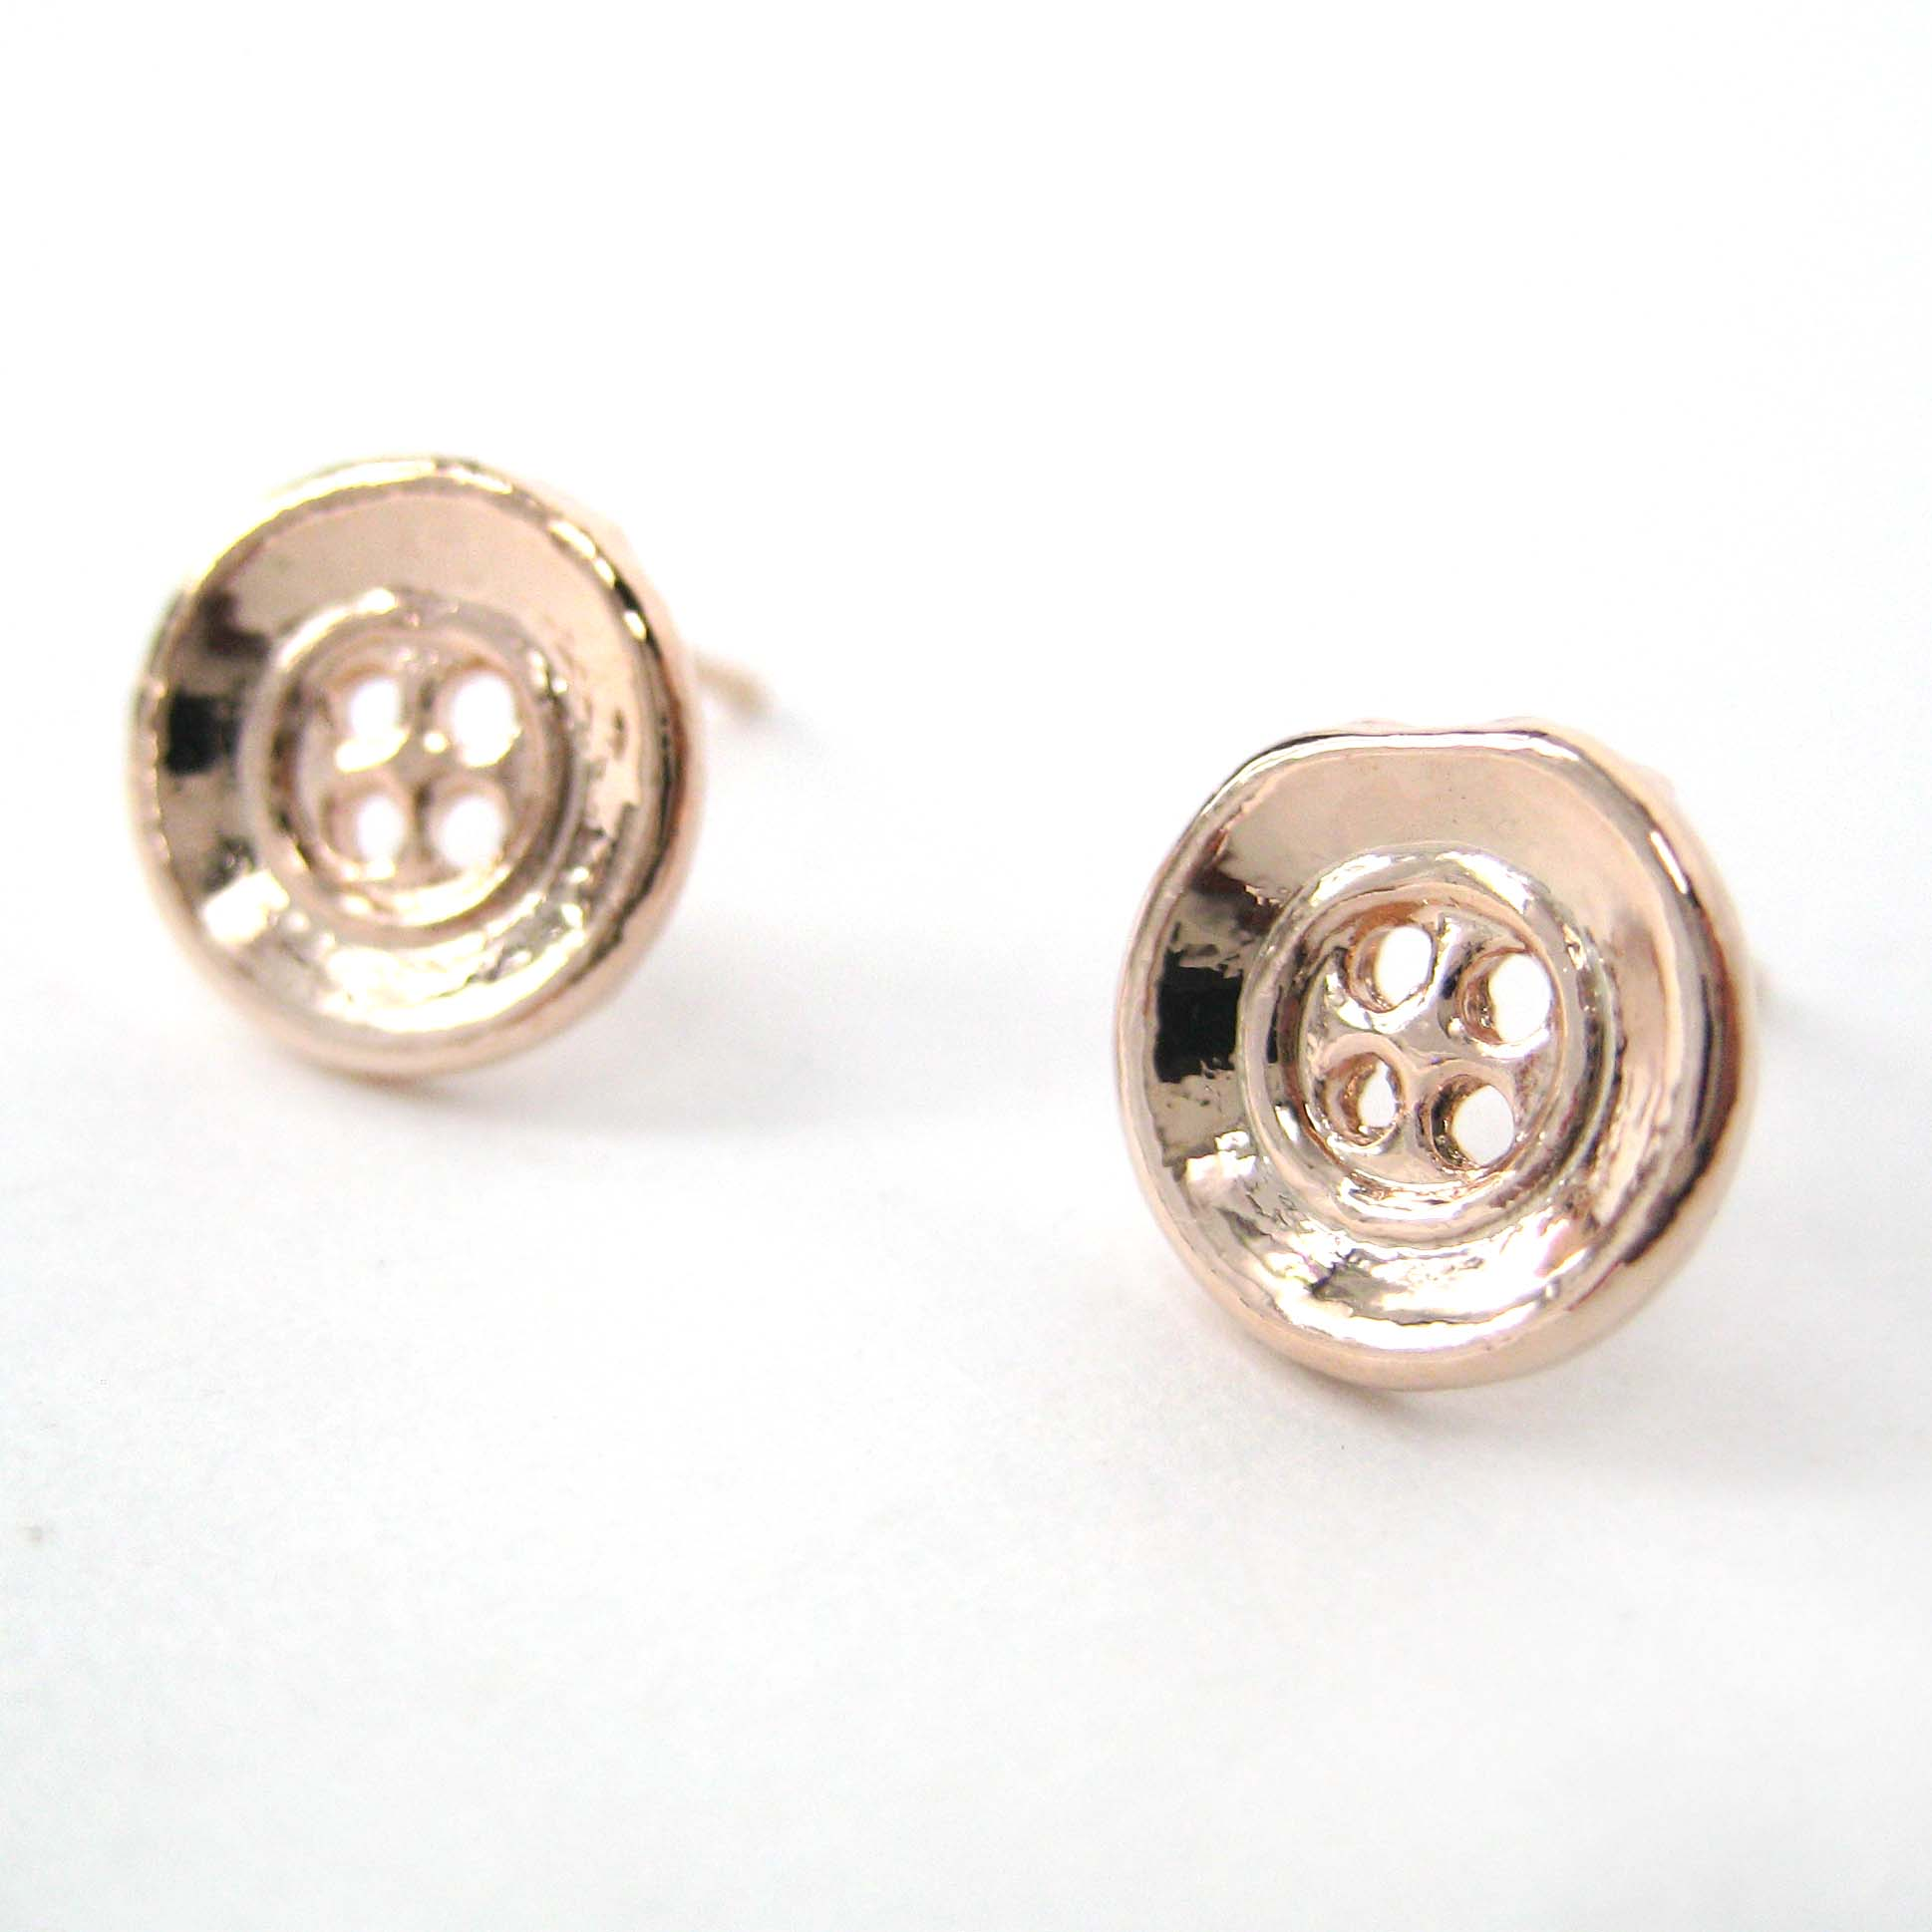 muru silver button stud luck good lucky sterling earrings image